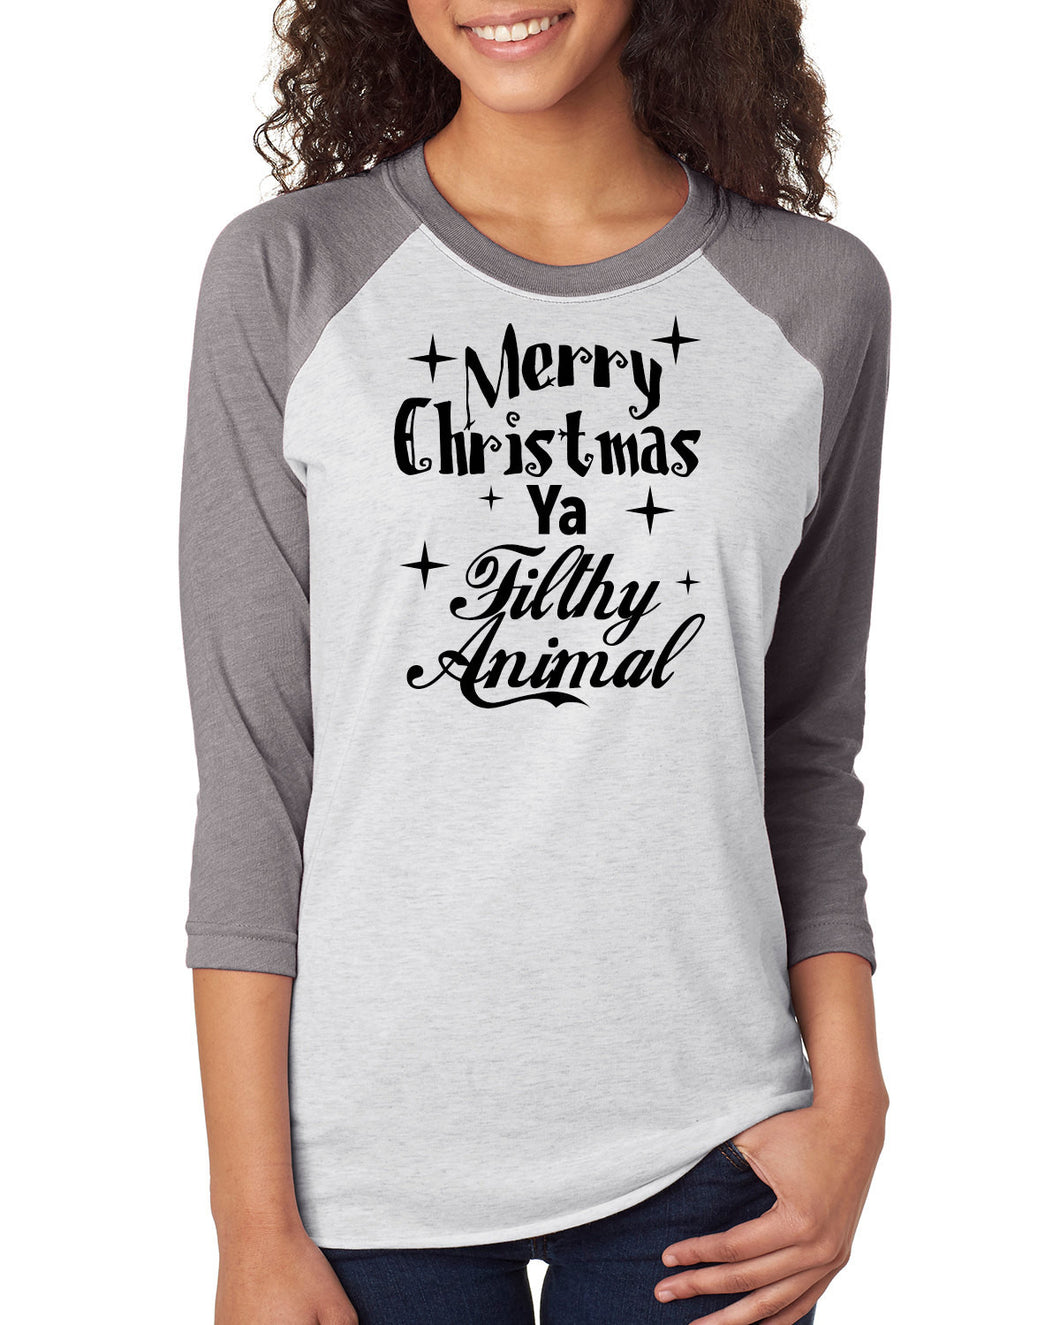 769a43ab ... Merry Christmas Ya Filthy Animal Shirt,Trebled 3/4 Sleeve Raglan Tees,  H ...